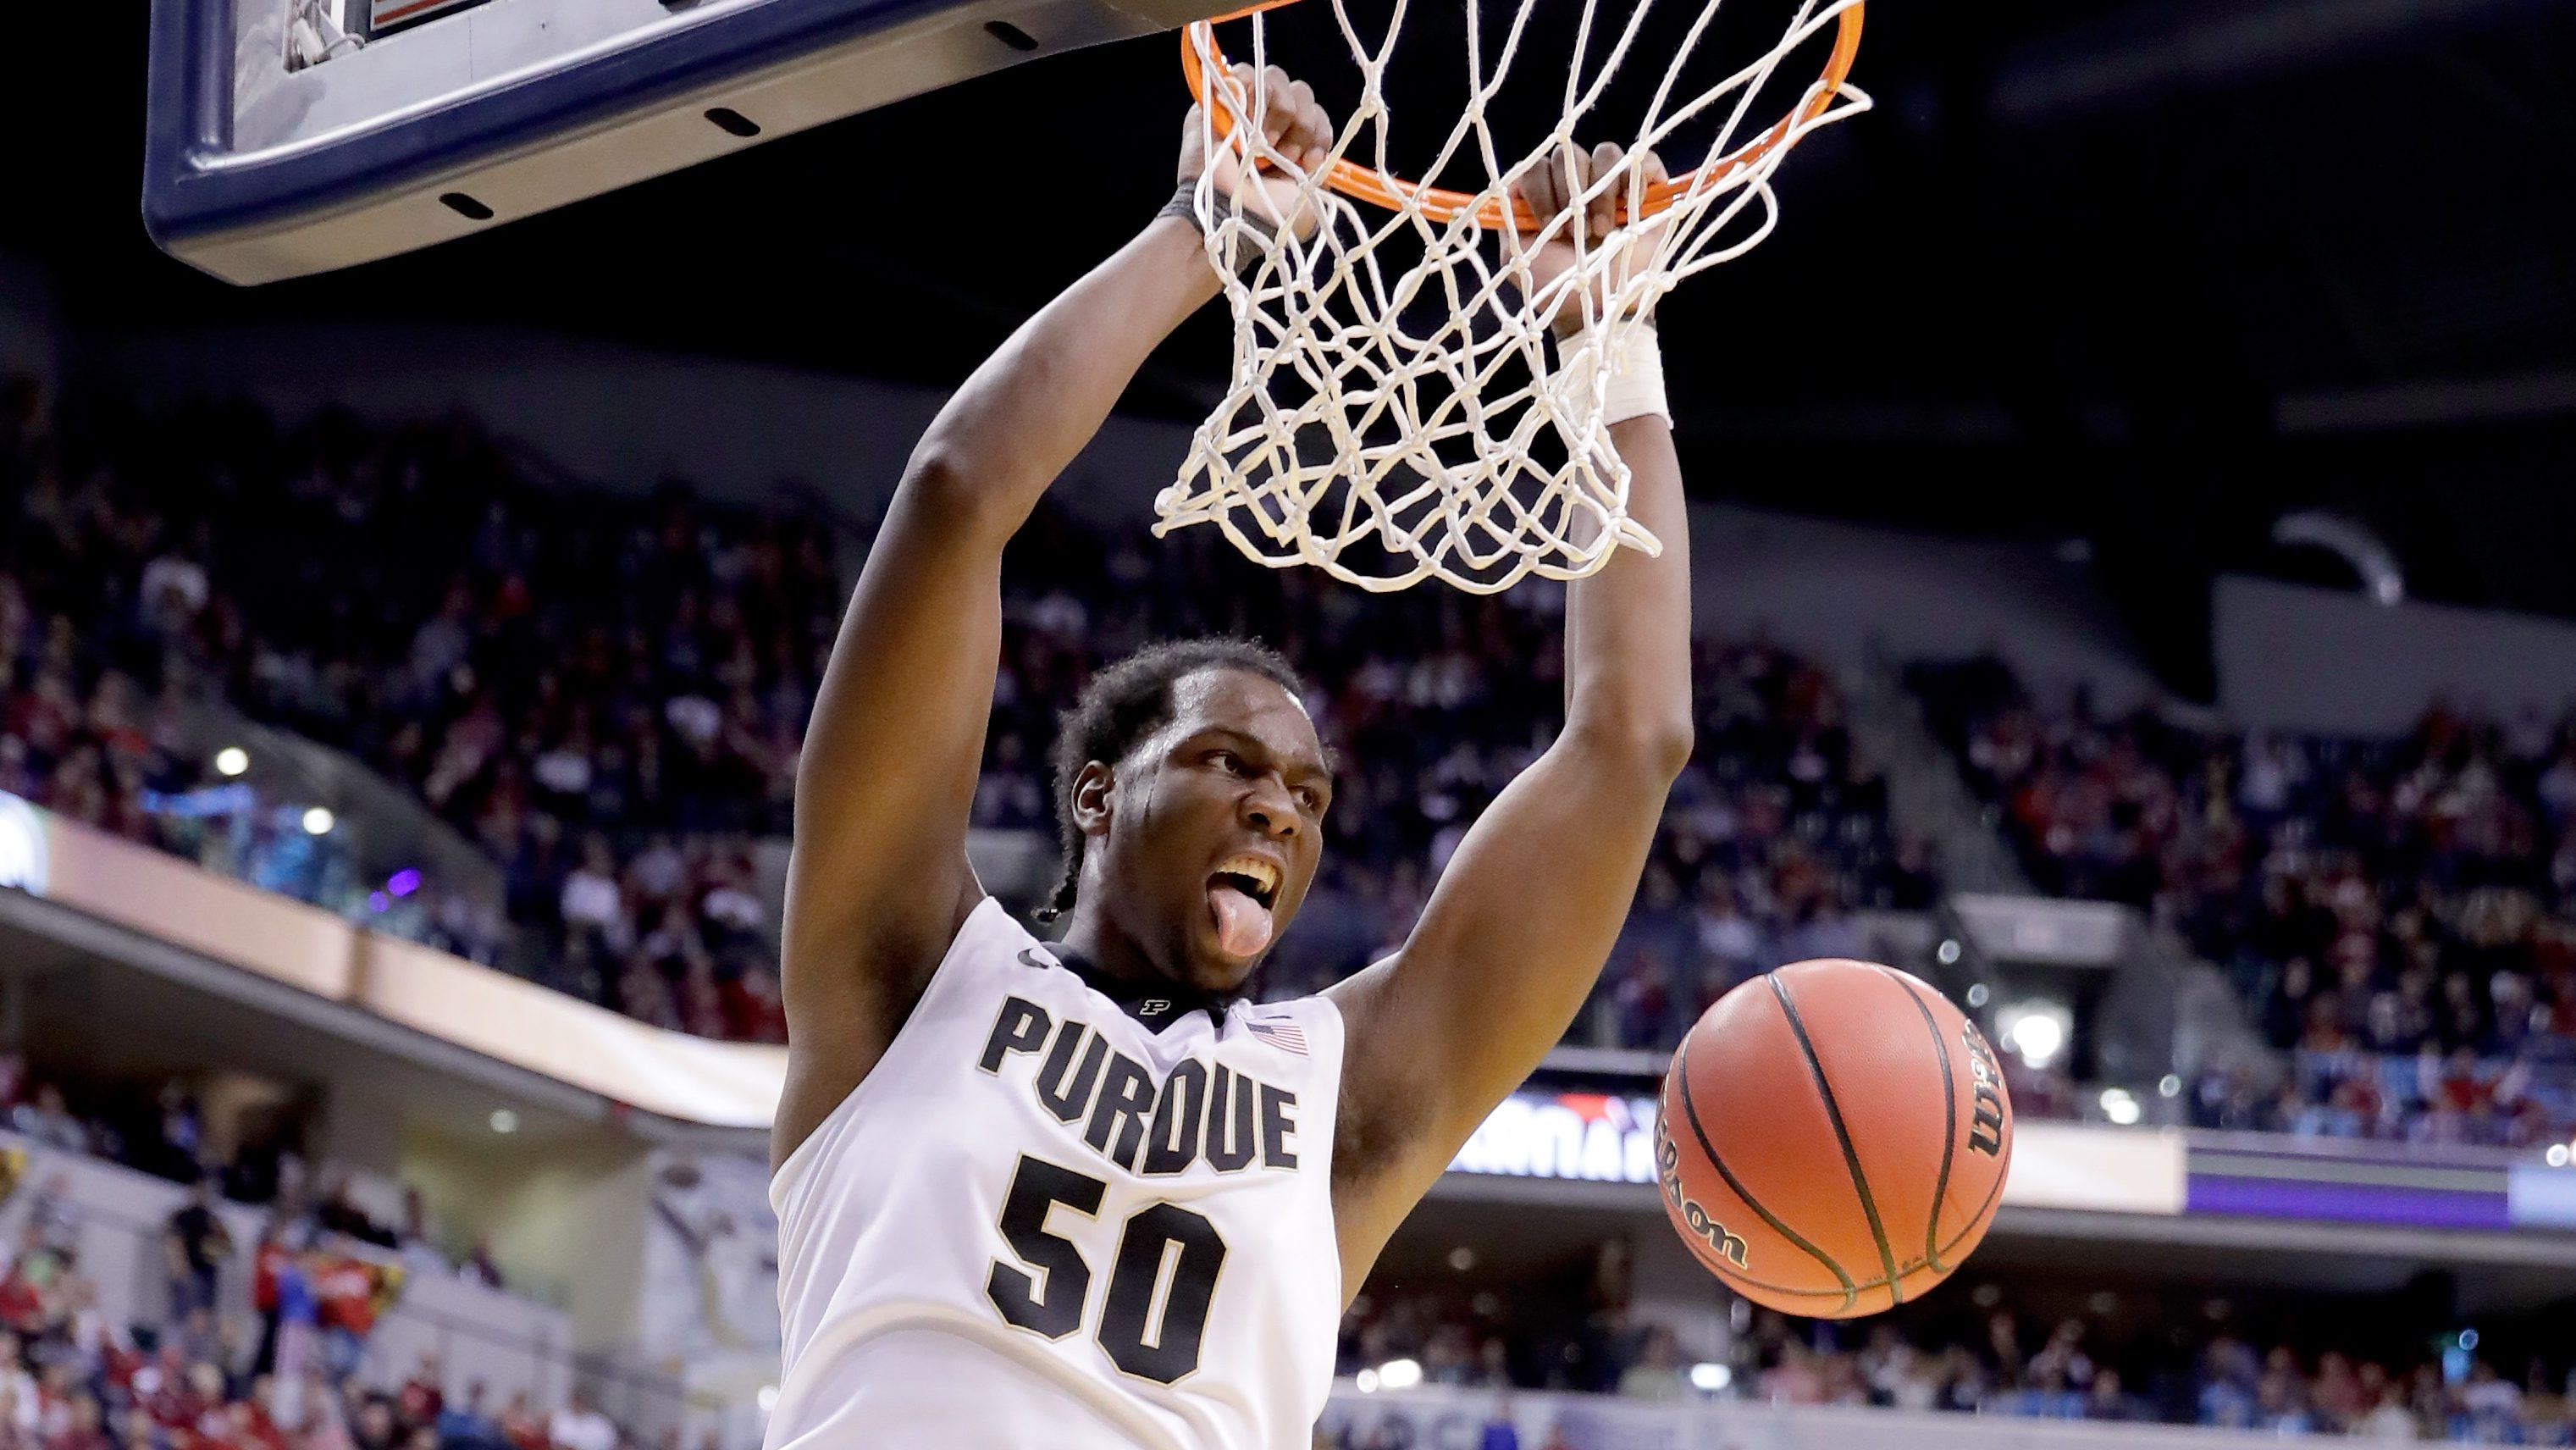 INDIANAPOLIS, IN - DECEMBER 17:  Caleb Swanigan #50 of the Purdue Boilermakers dunks the ball during the game against the Notre Dame Fighting Irish during the Crossroads Classic at Bankers Life Fieldhouse on December 17, 2016 in Indianapolis, Indiana.  (Photo by Andy Lyons/Getty Images)